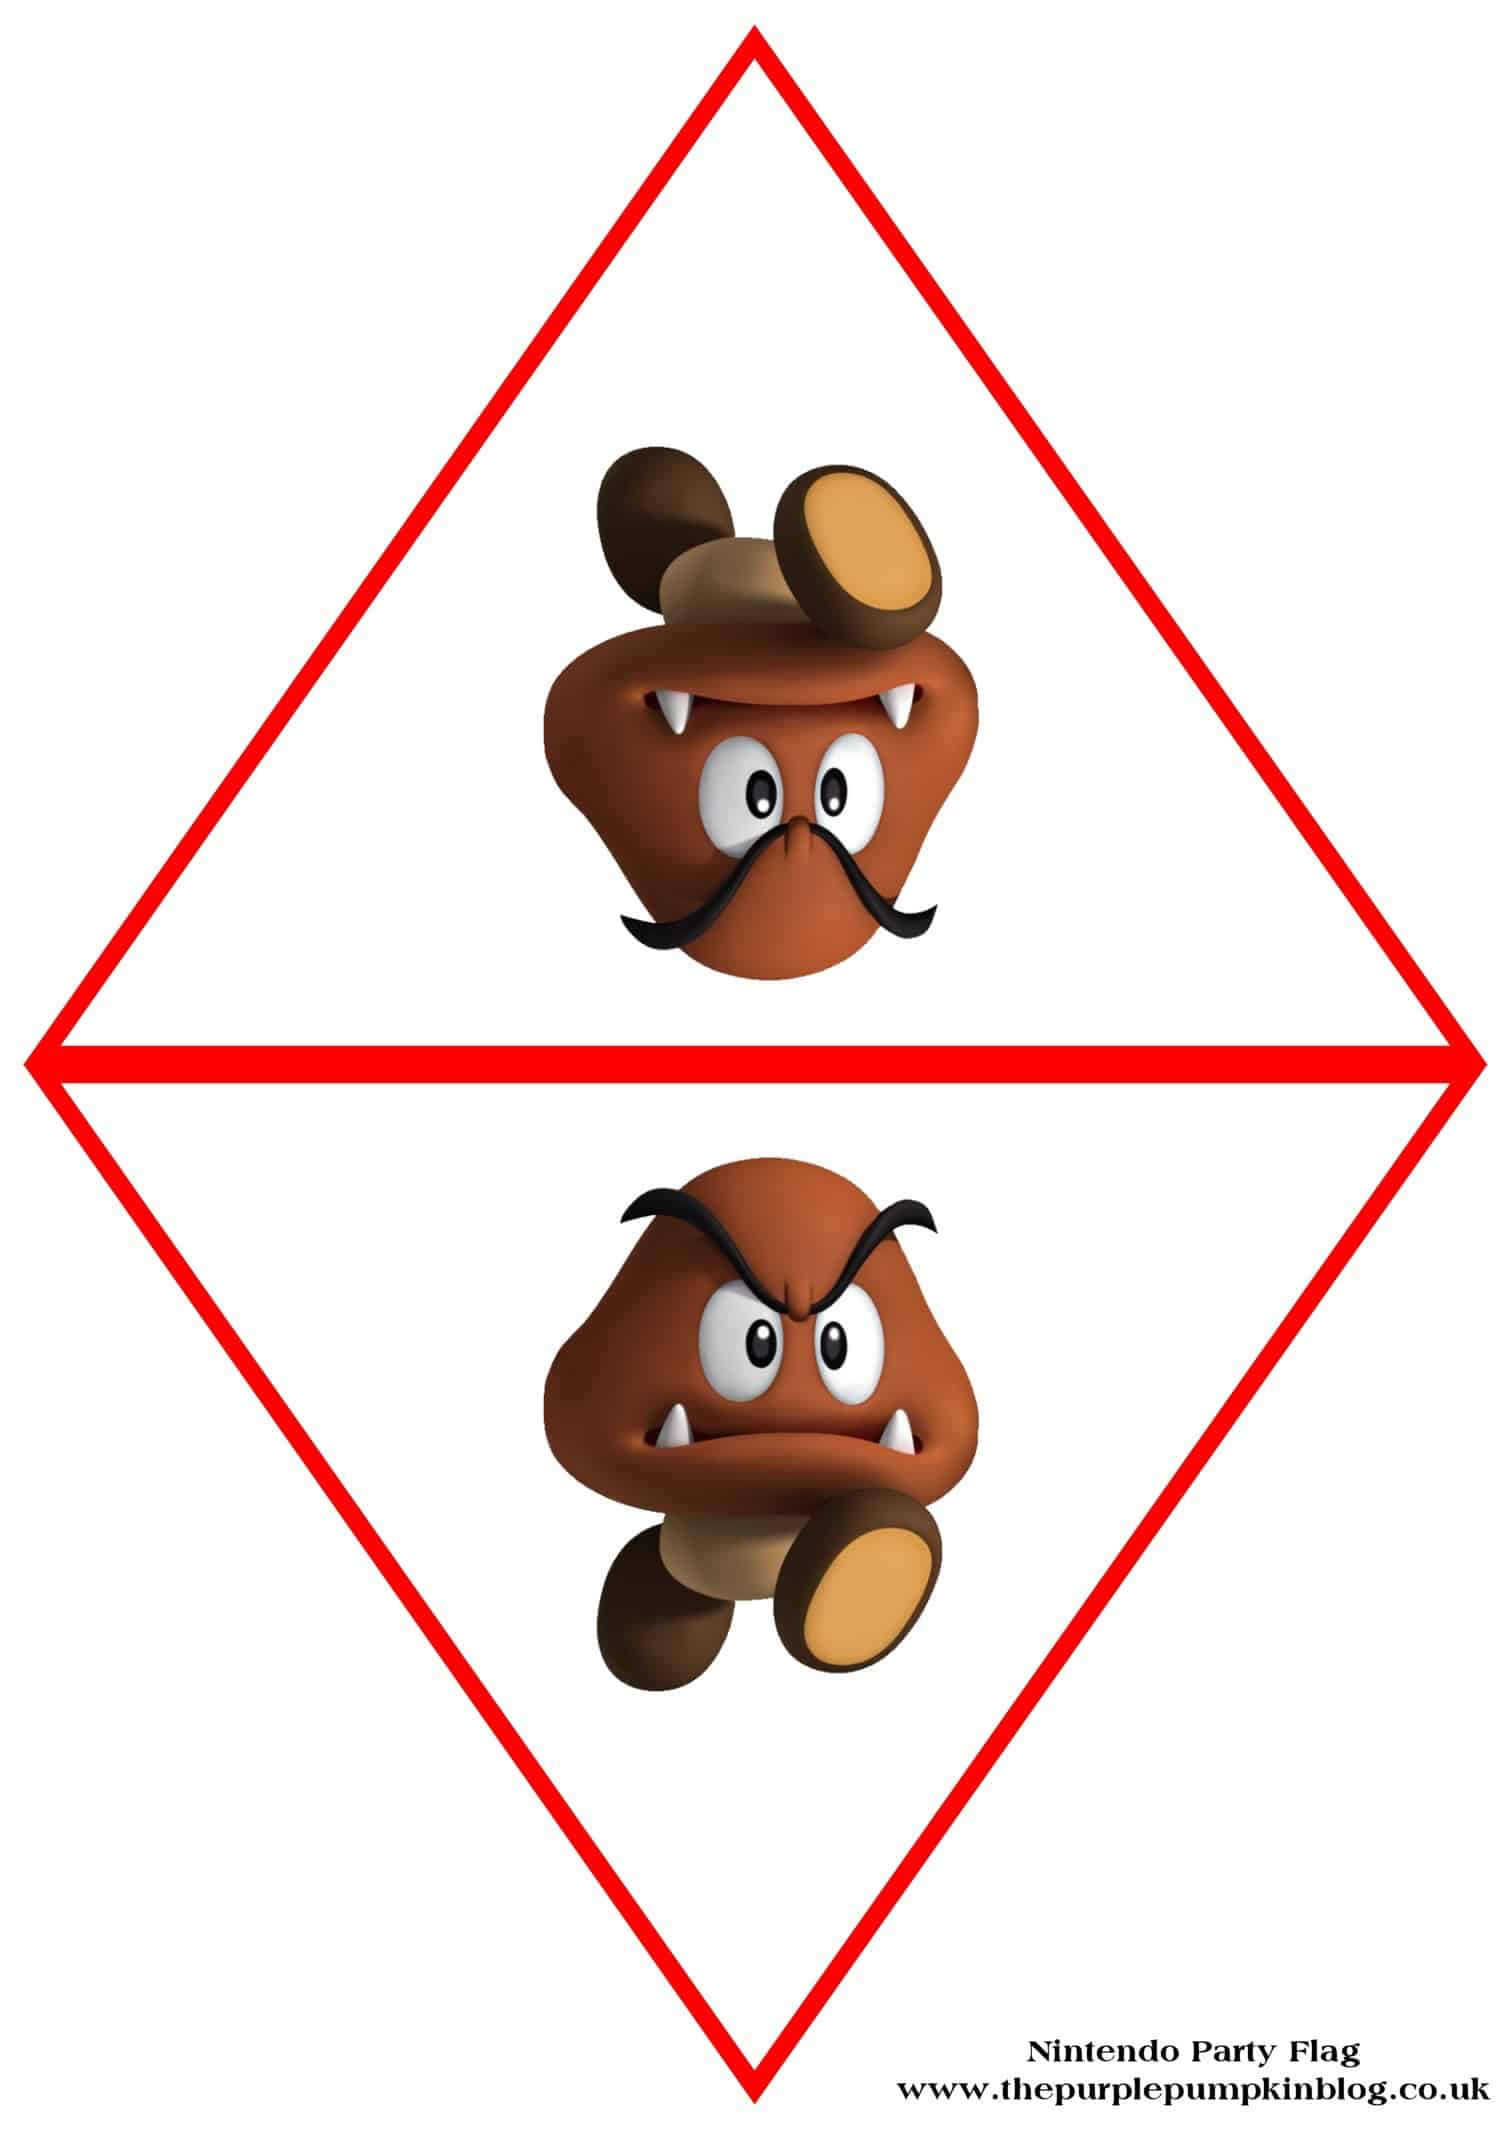 nintendo-party-flag-goomba